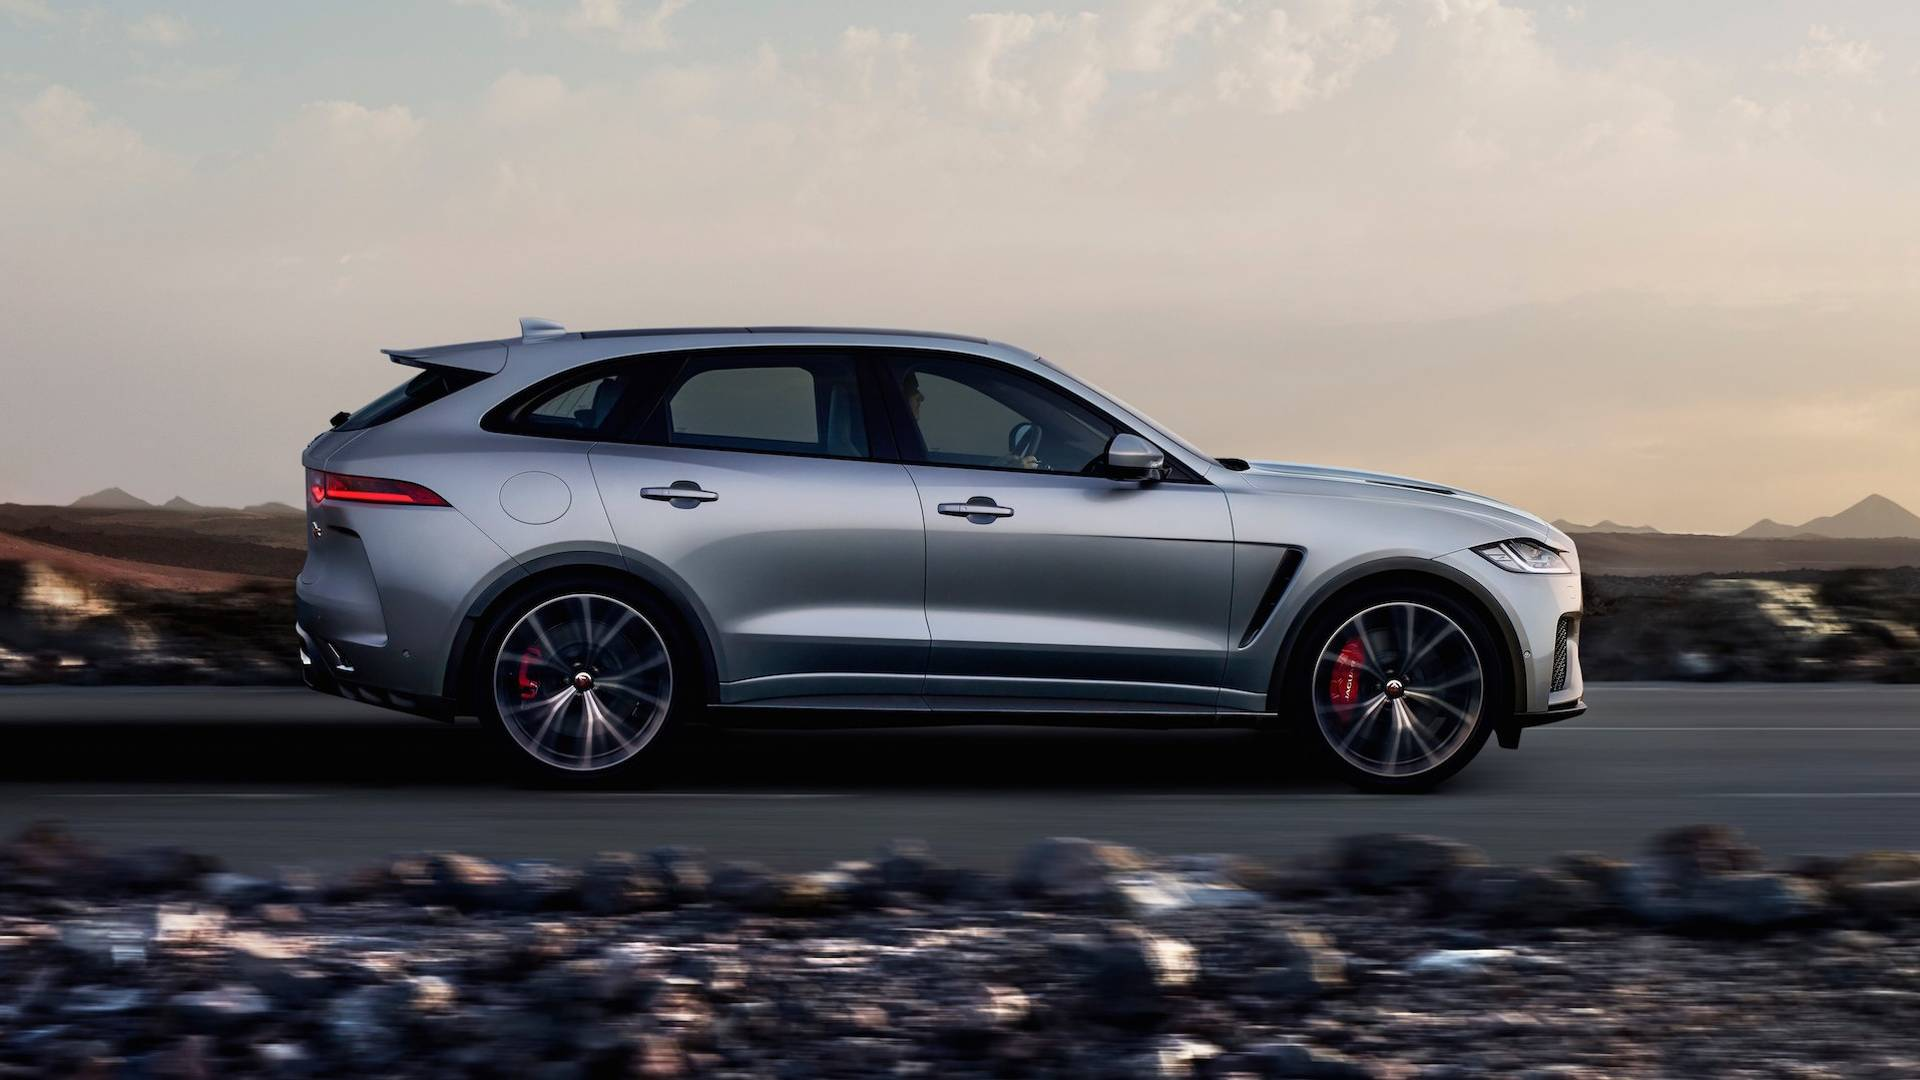 2019 Jaguar F-Pace SVR: News, Design, Engine, Price >> 550 Hp Jaguar F Pace Adds Utility To The Svr Range